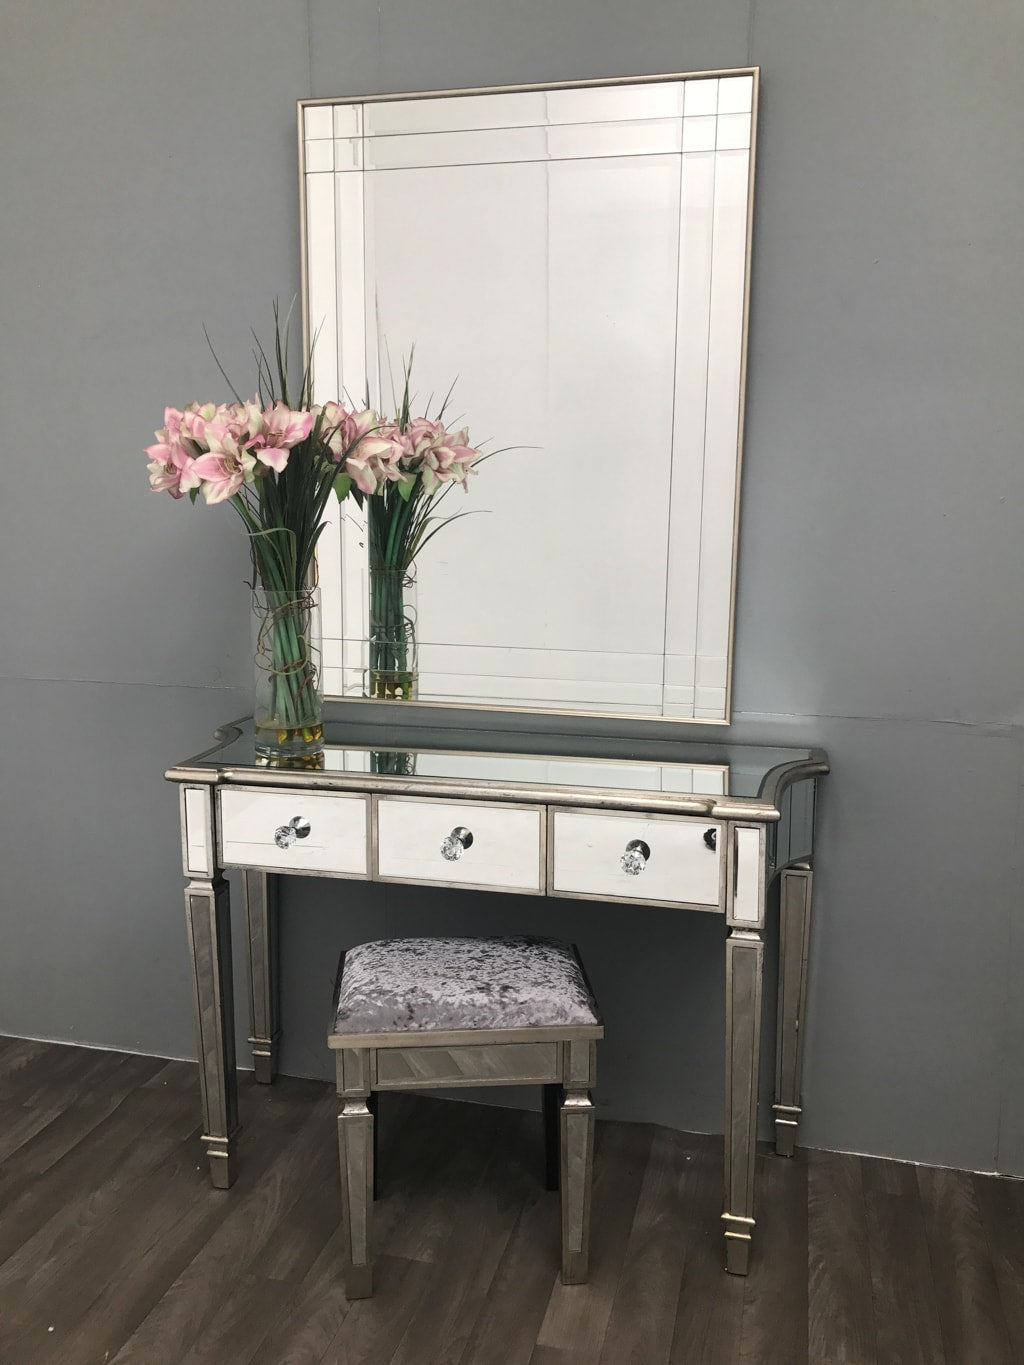 Mirrored Dressing Table With 3 Drawers - Marbella Collection